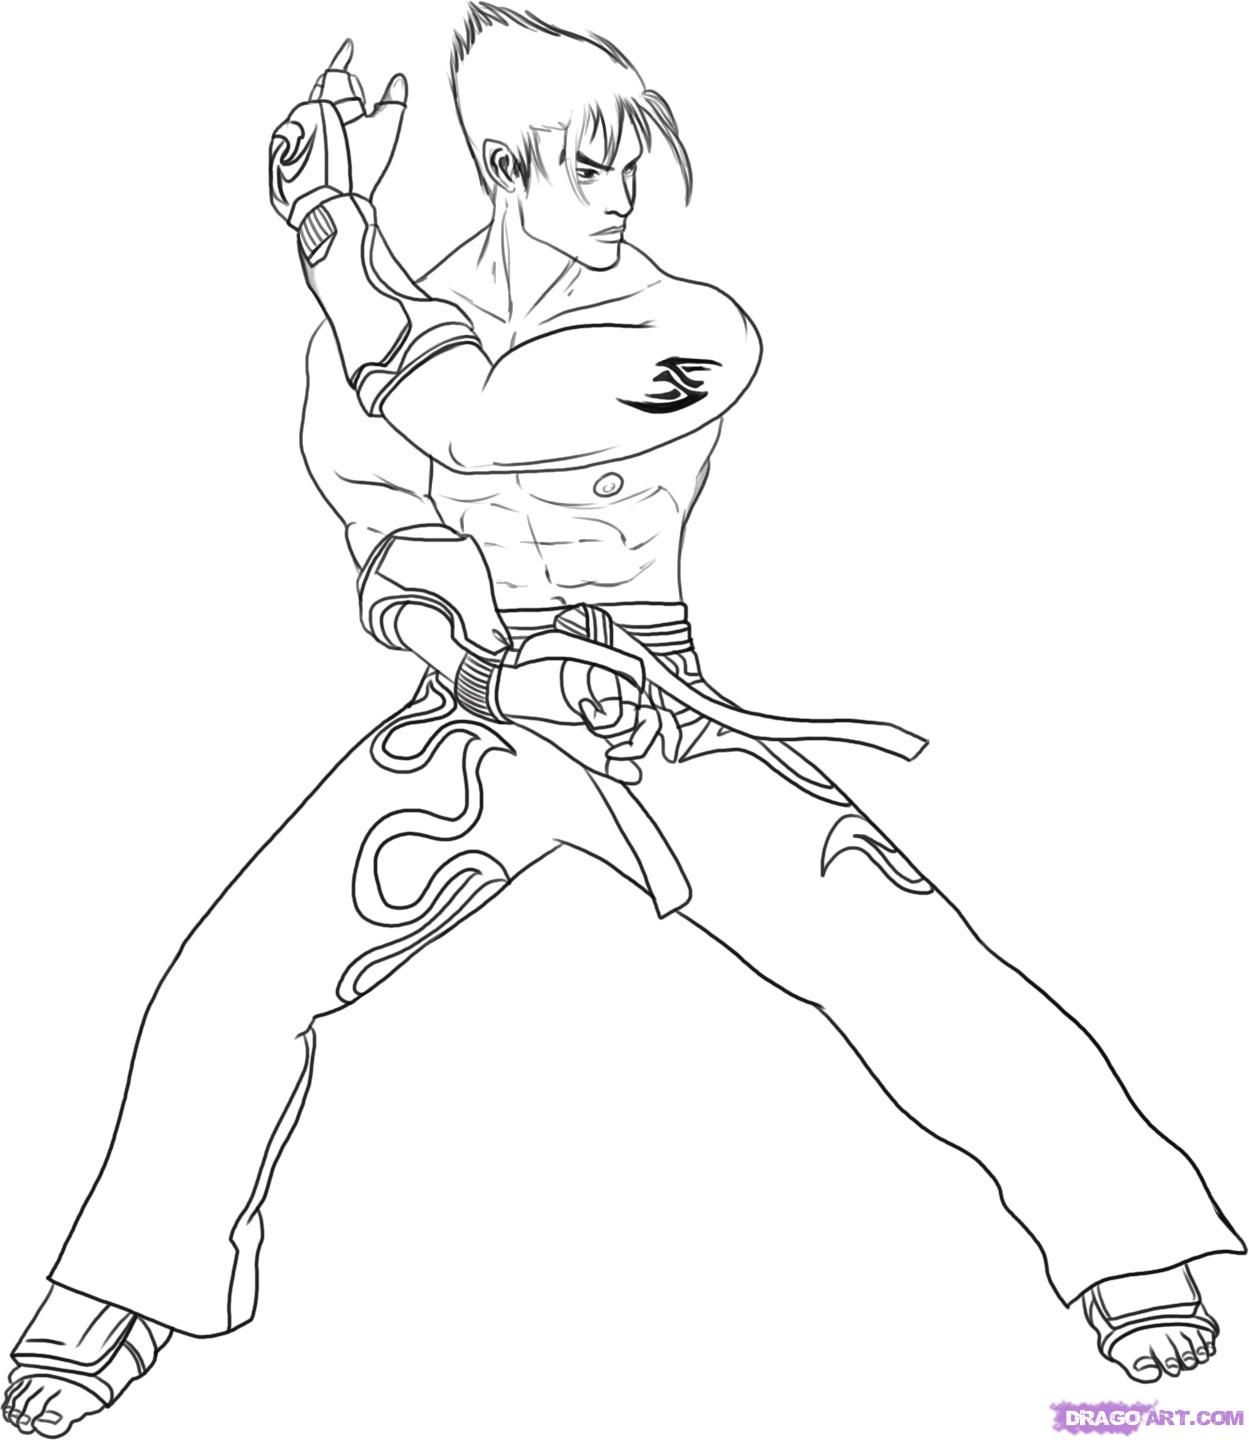 Tekken Jin Coloring Pages